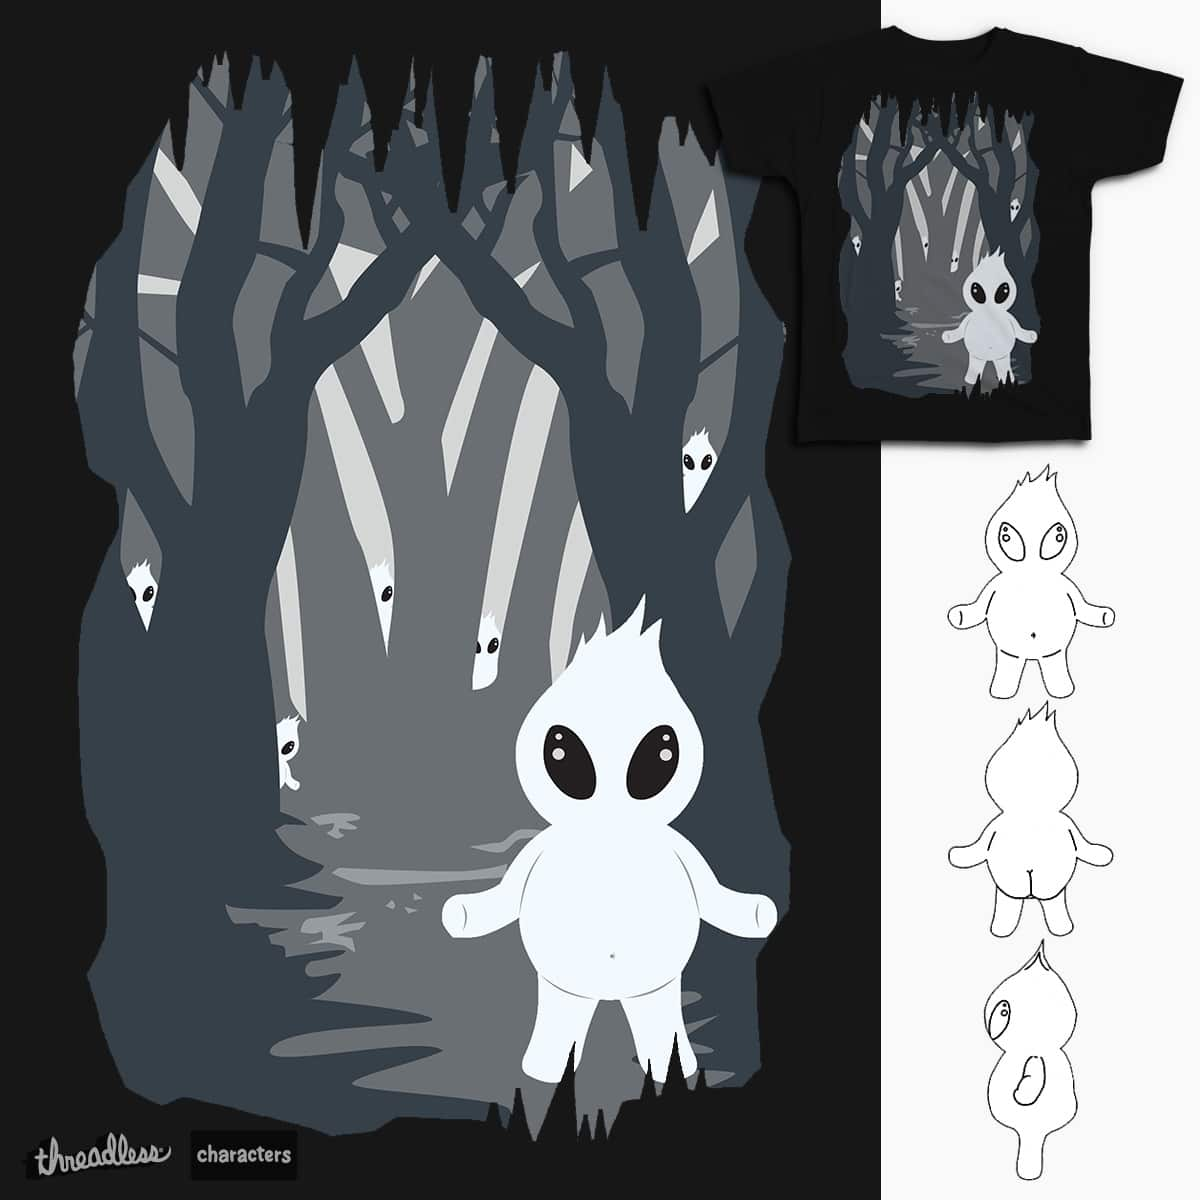 Ignis Fatuus (Fuego fatuo) by Beatrizxe on Threadless